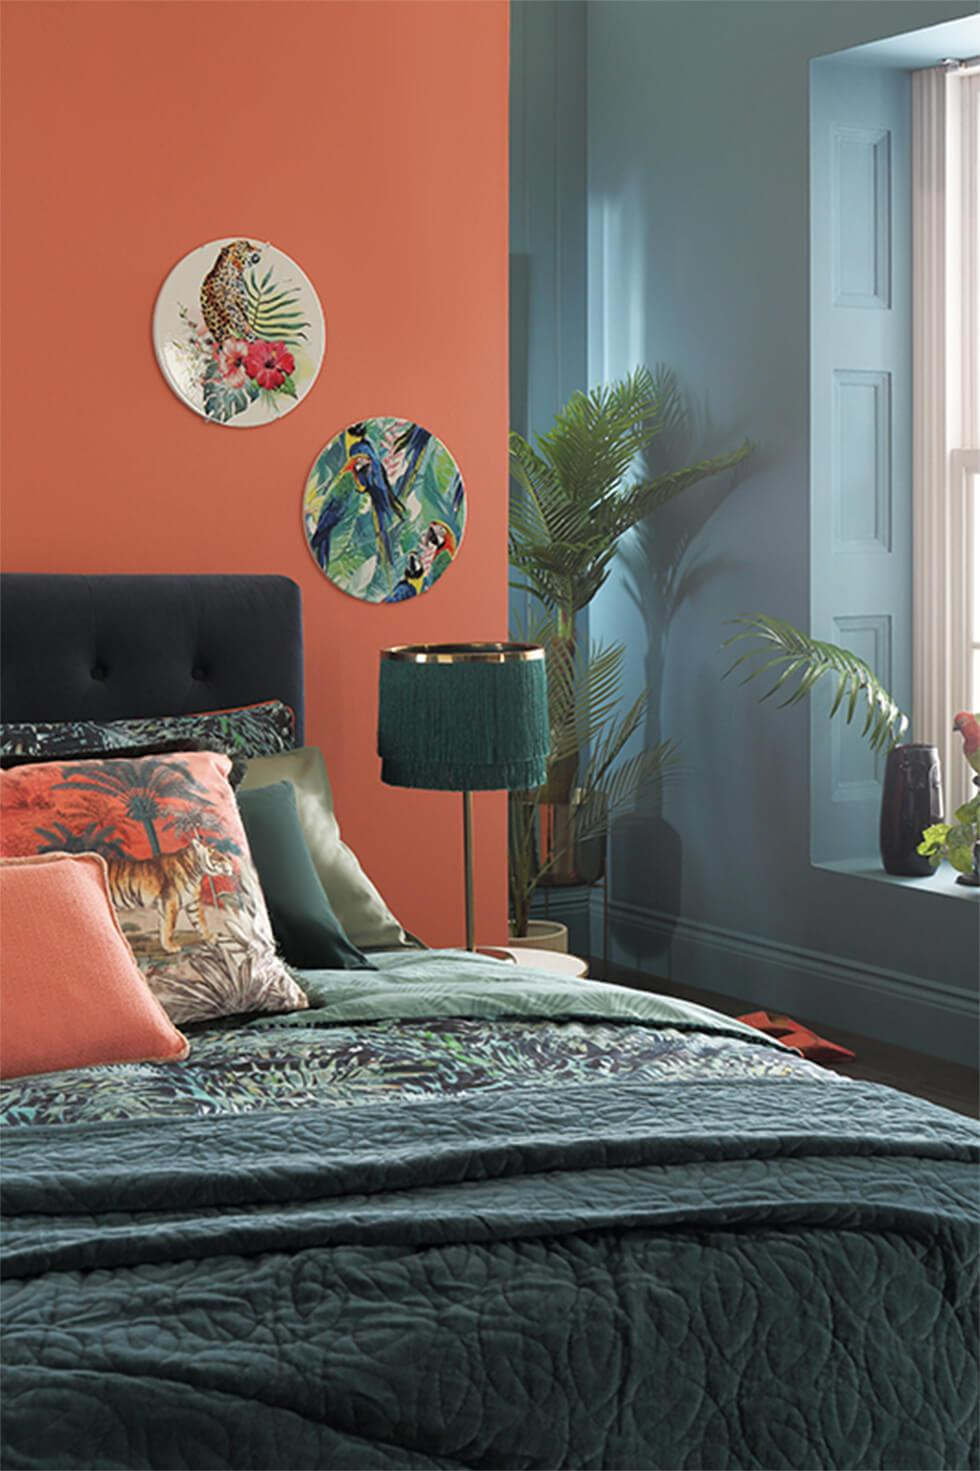 Orange and teal bedroom with tropical prints and velvet bed